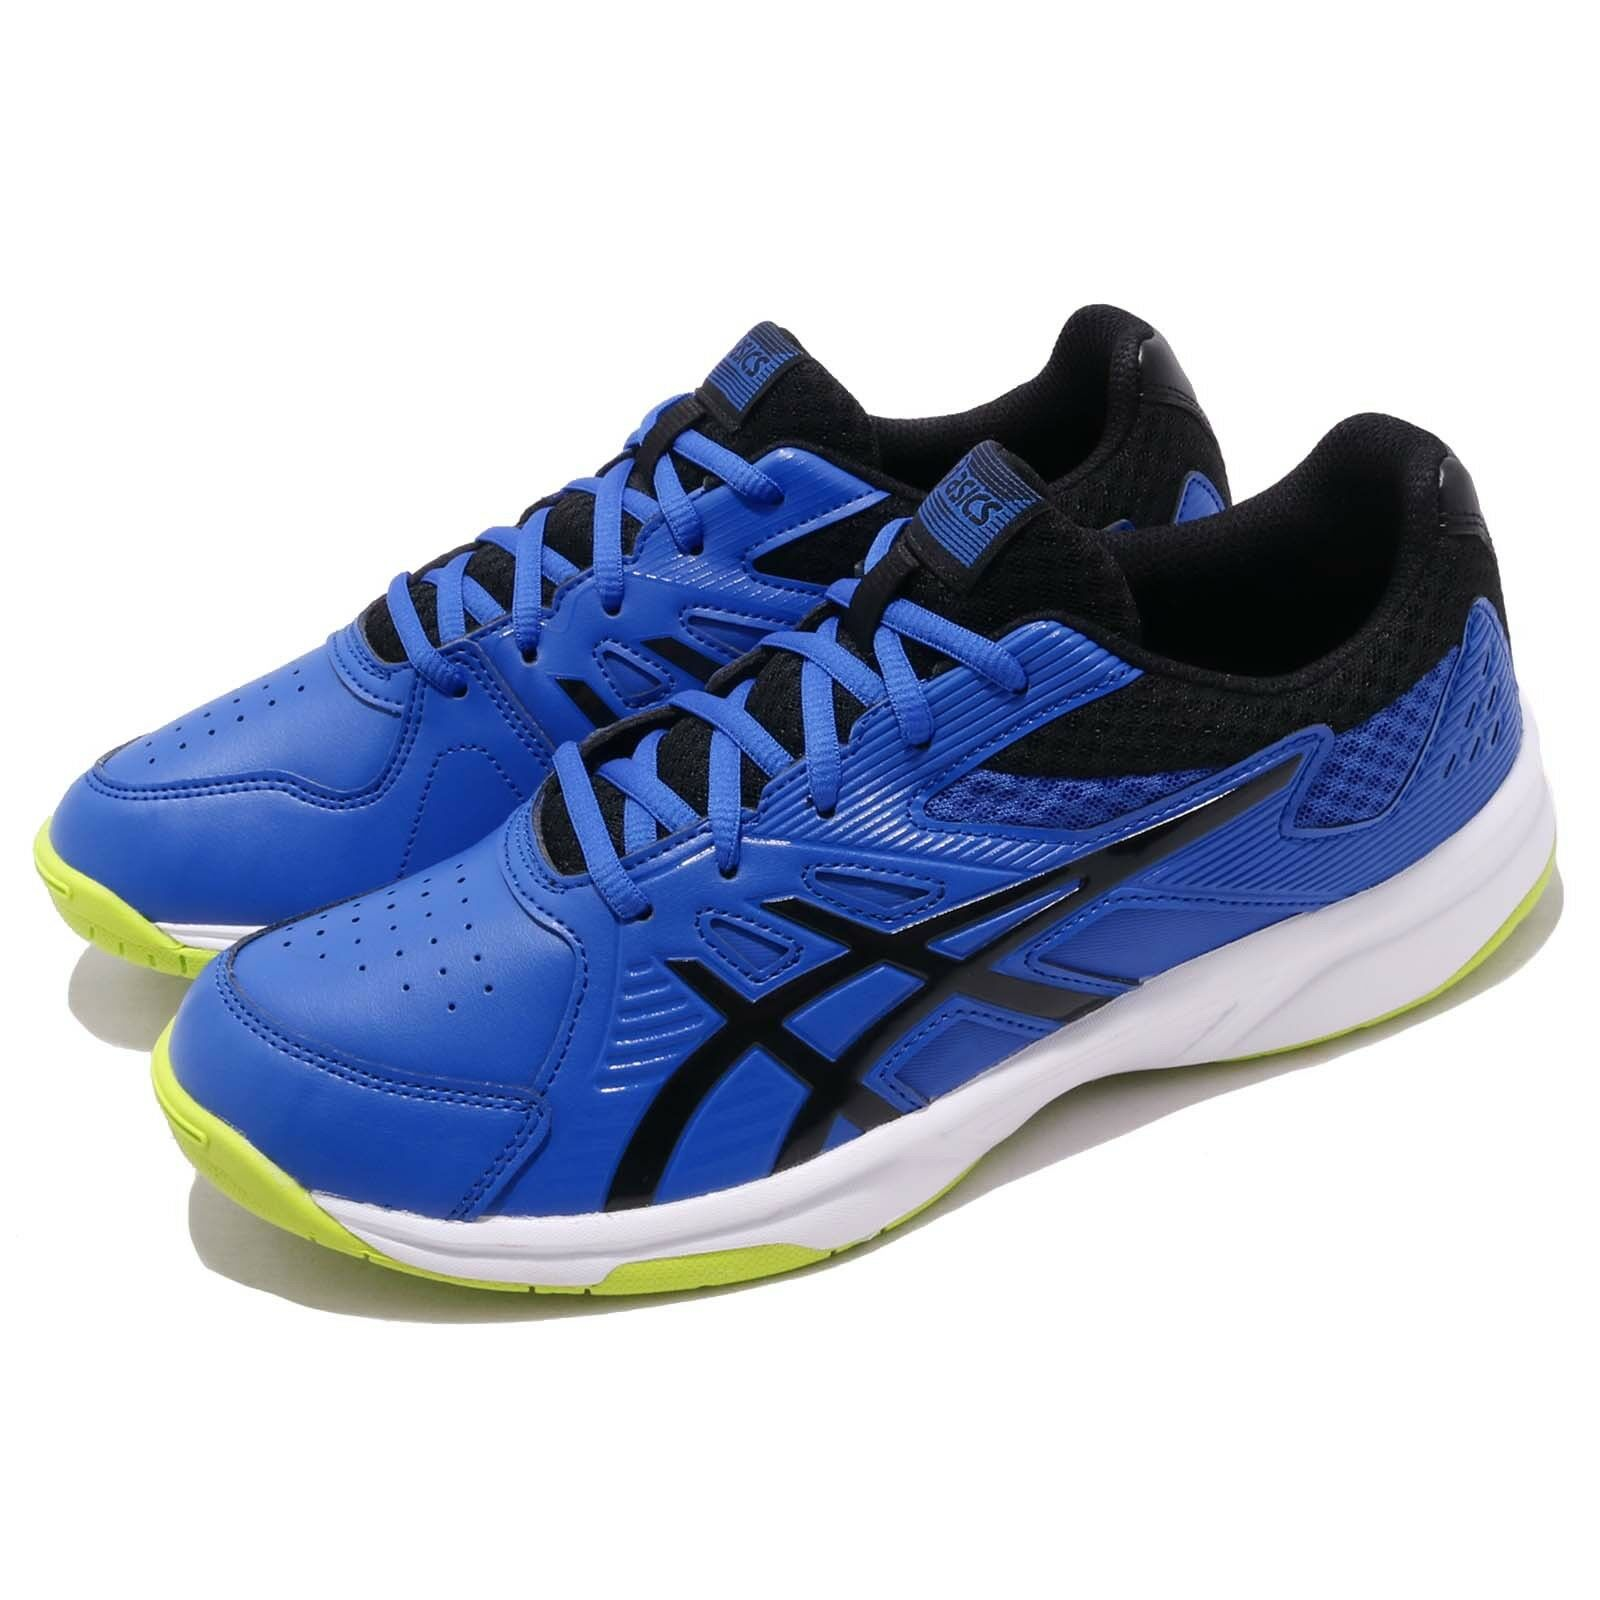 Asics Court Slide Illsion bluee Black Whit Men Tennis shoes Sneakers 1041A037-407